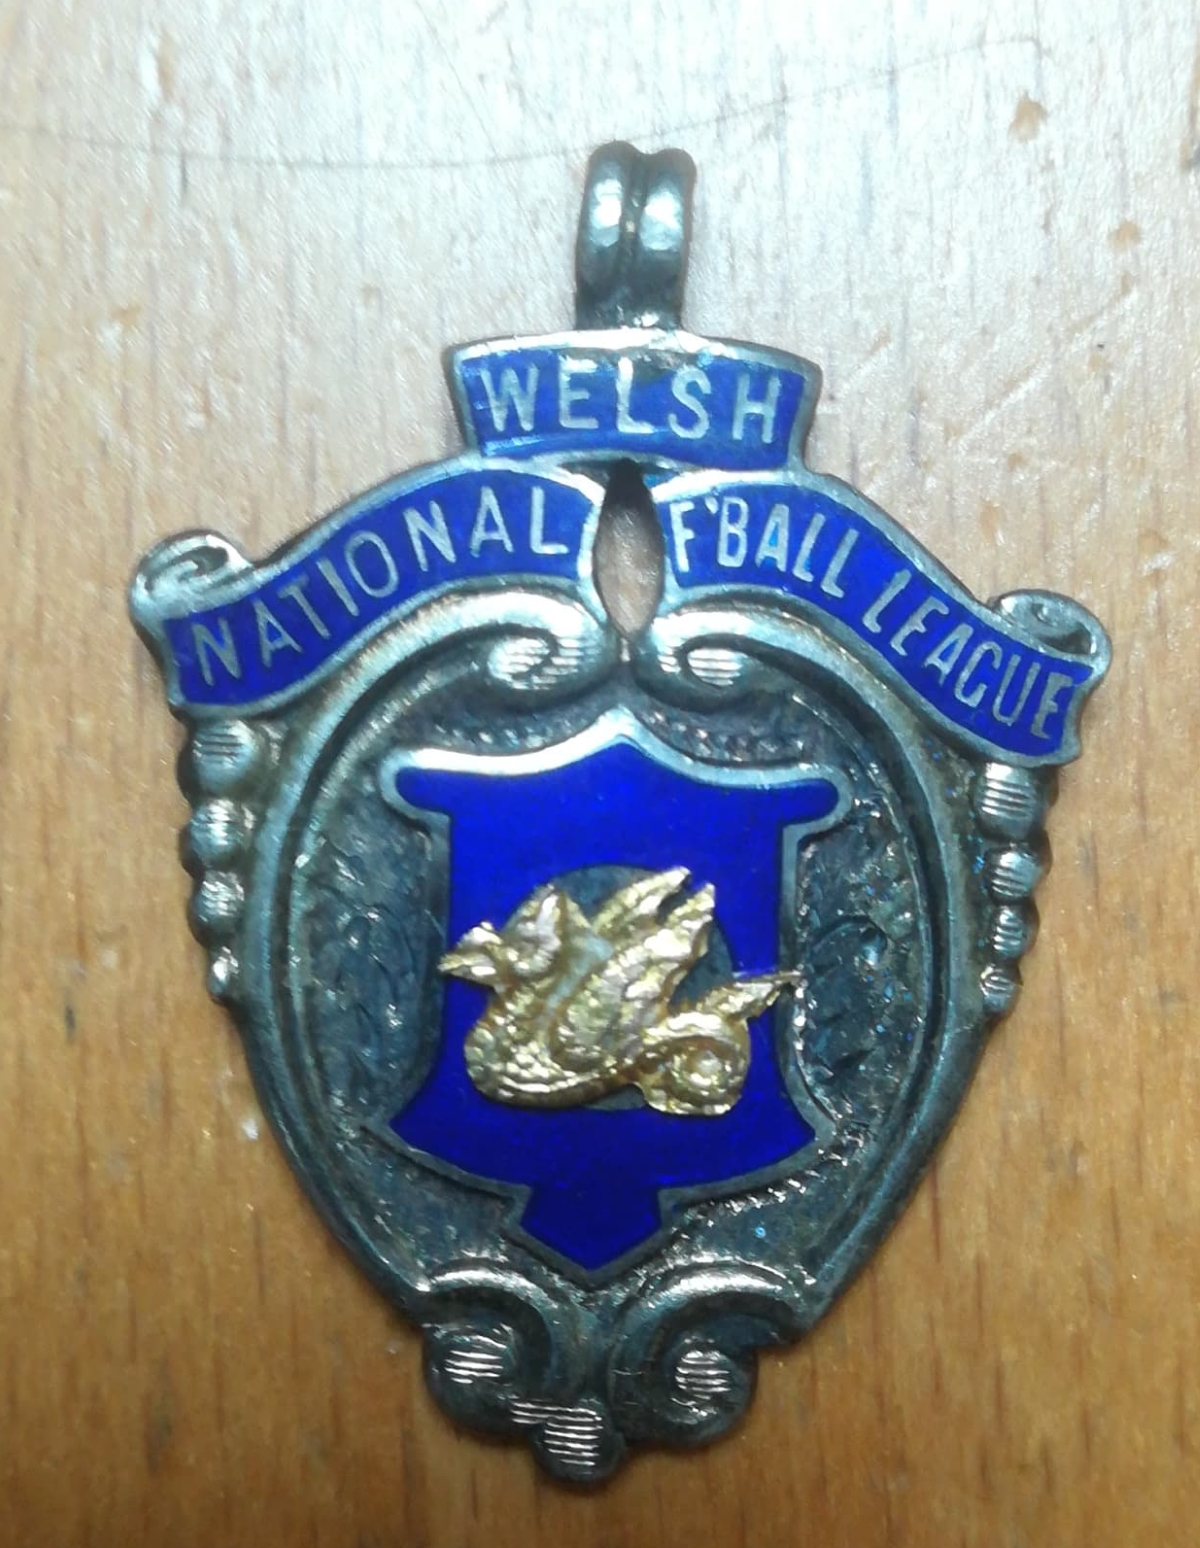 Welsh football medal collector